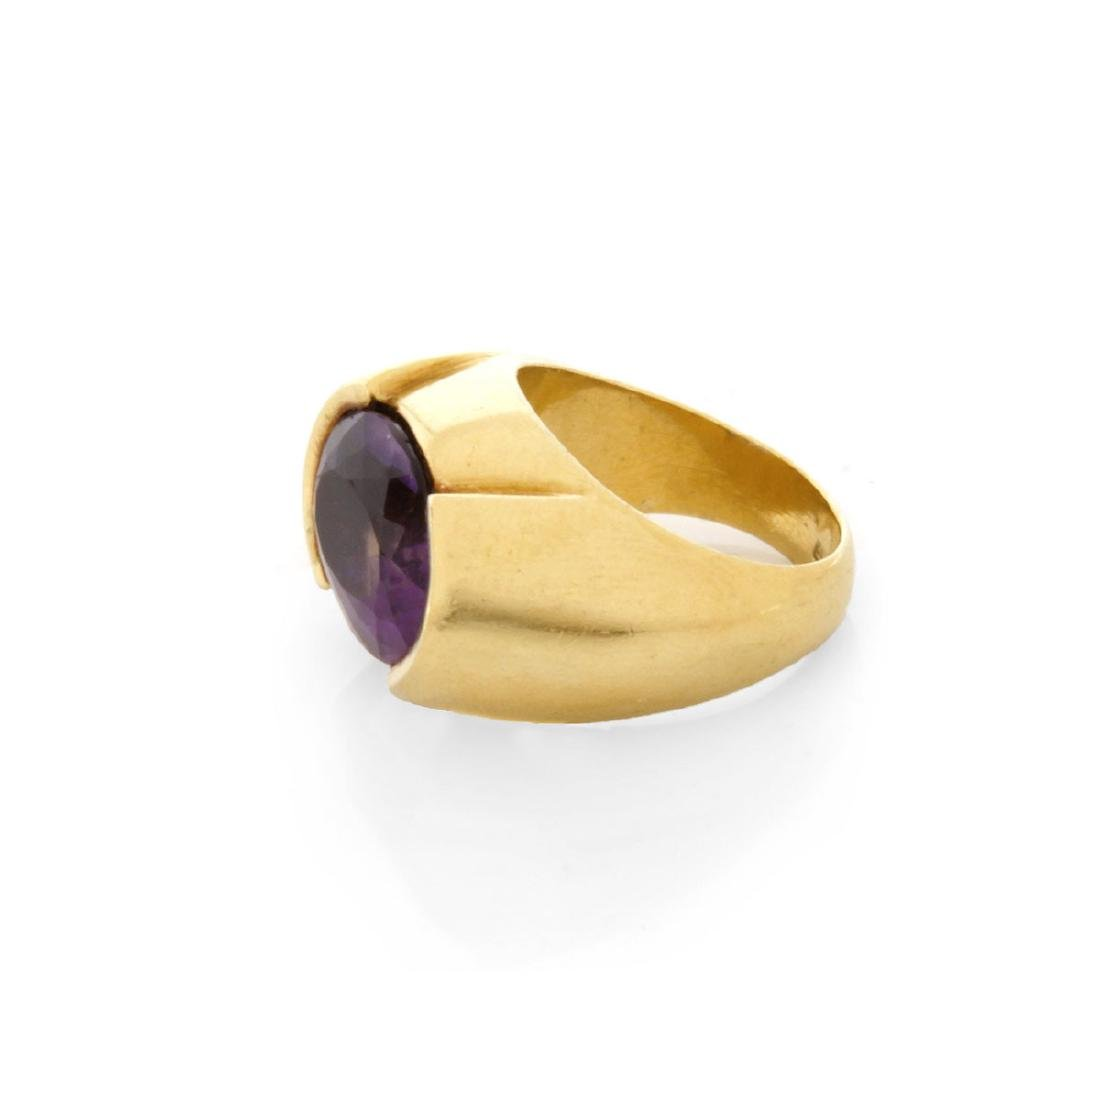 Vintage Amethyst and 18K Ring - 3